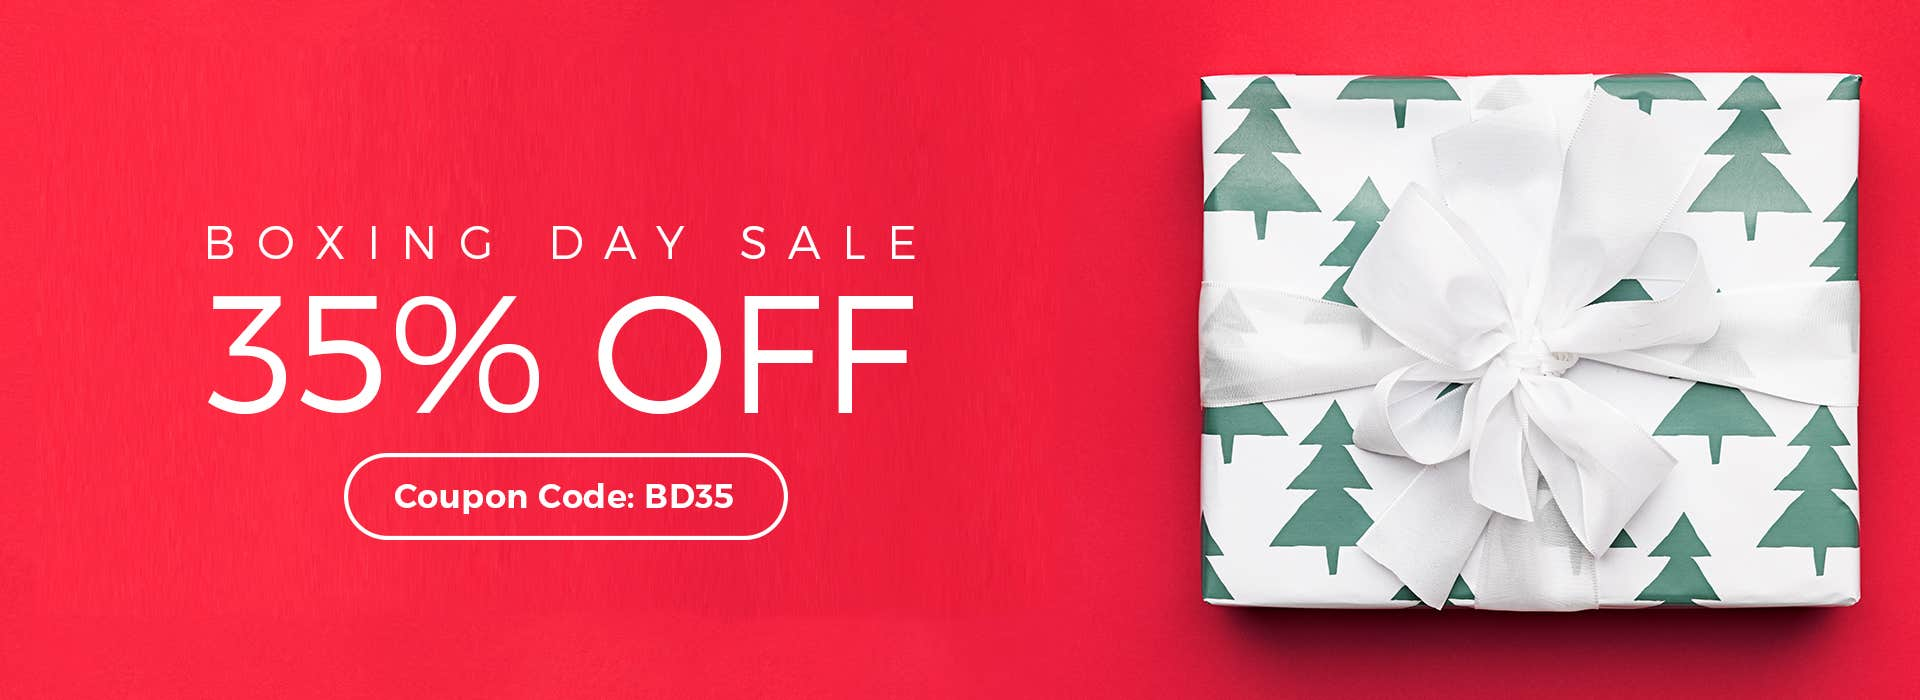 Boxing Day 2018 - Get 35% OFF on Specs at Goggles4U: